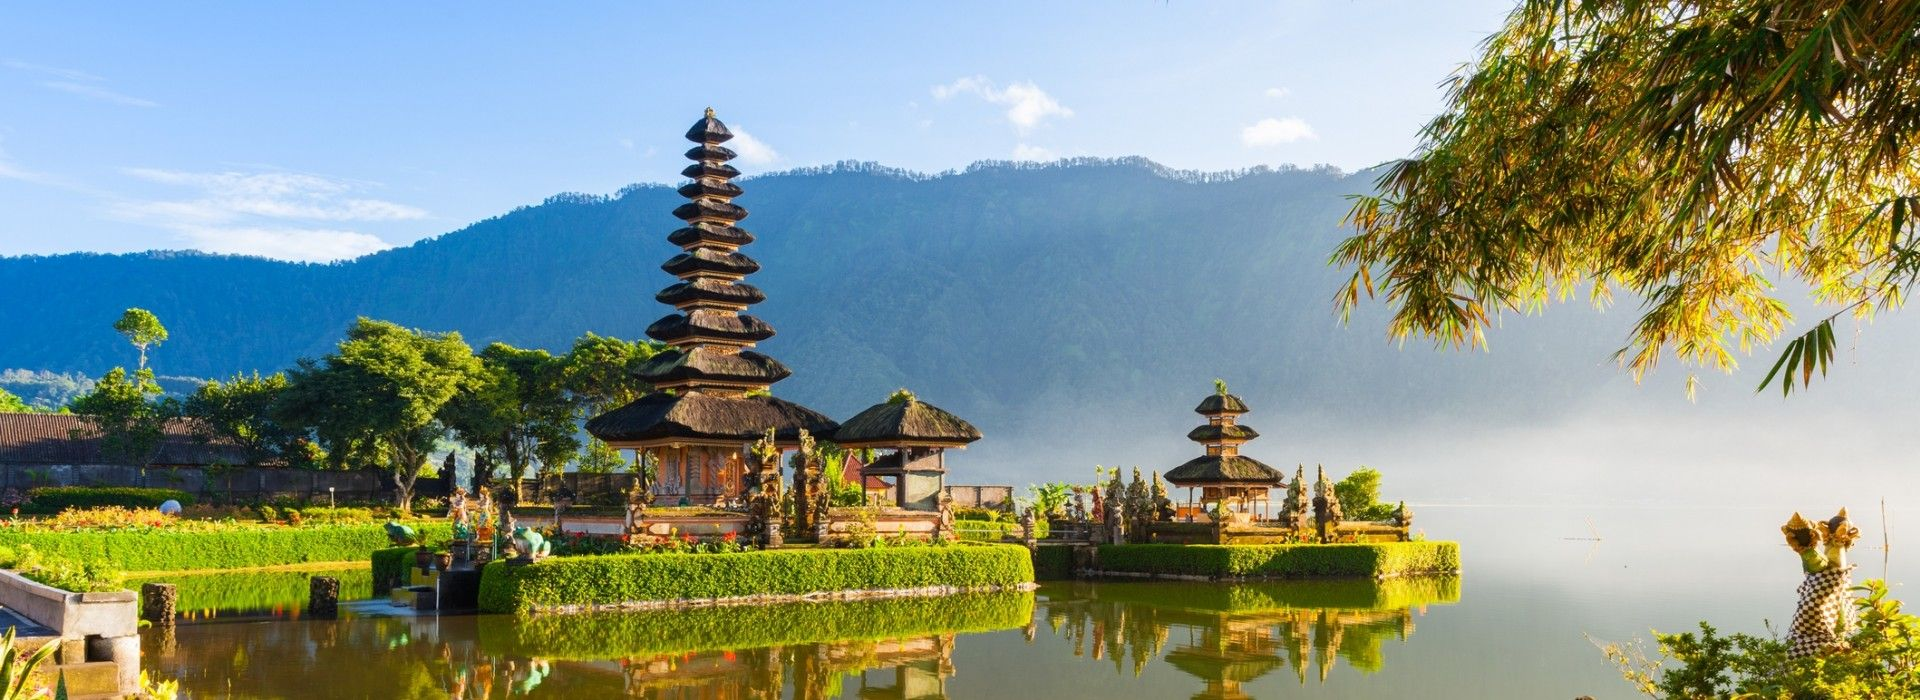 Adventure Tours in Ubud